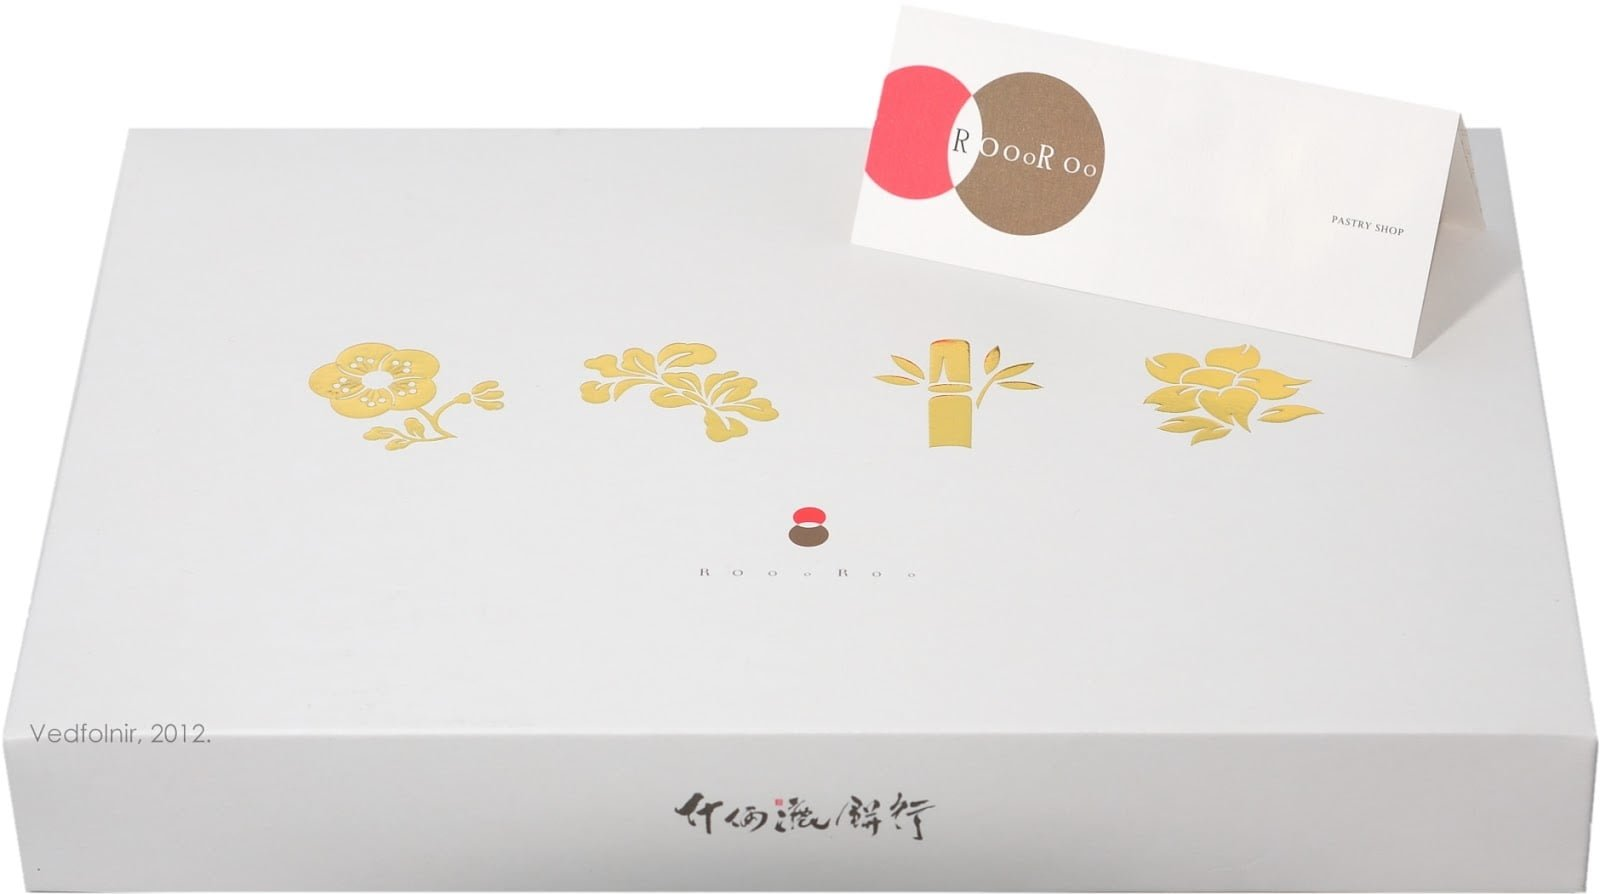 foodimg-roooroo-cake-biscuit-cookie-snack-什倆漉餅行-vedfolnir-white-box